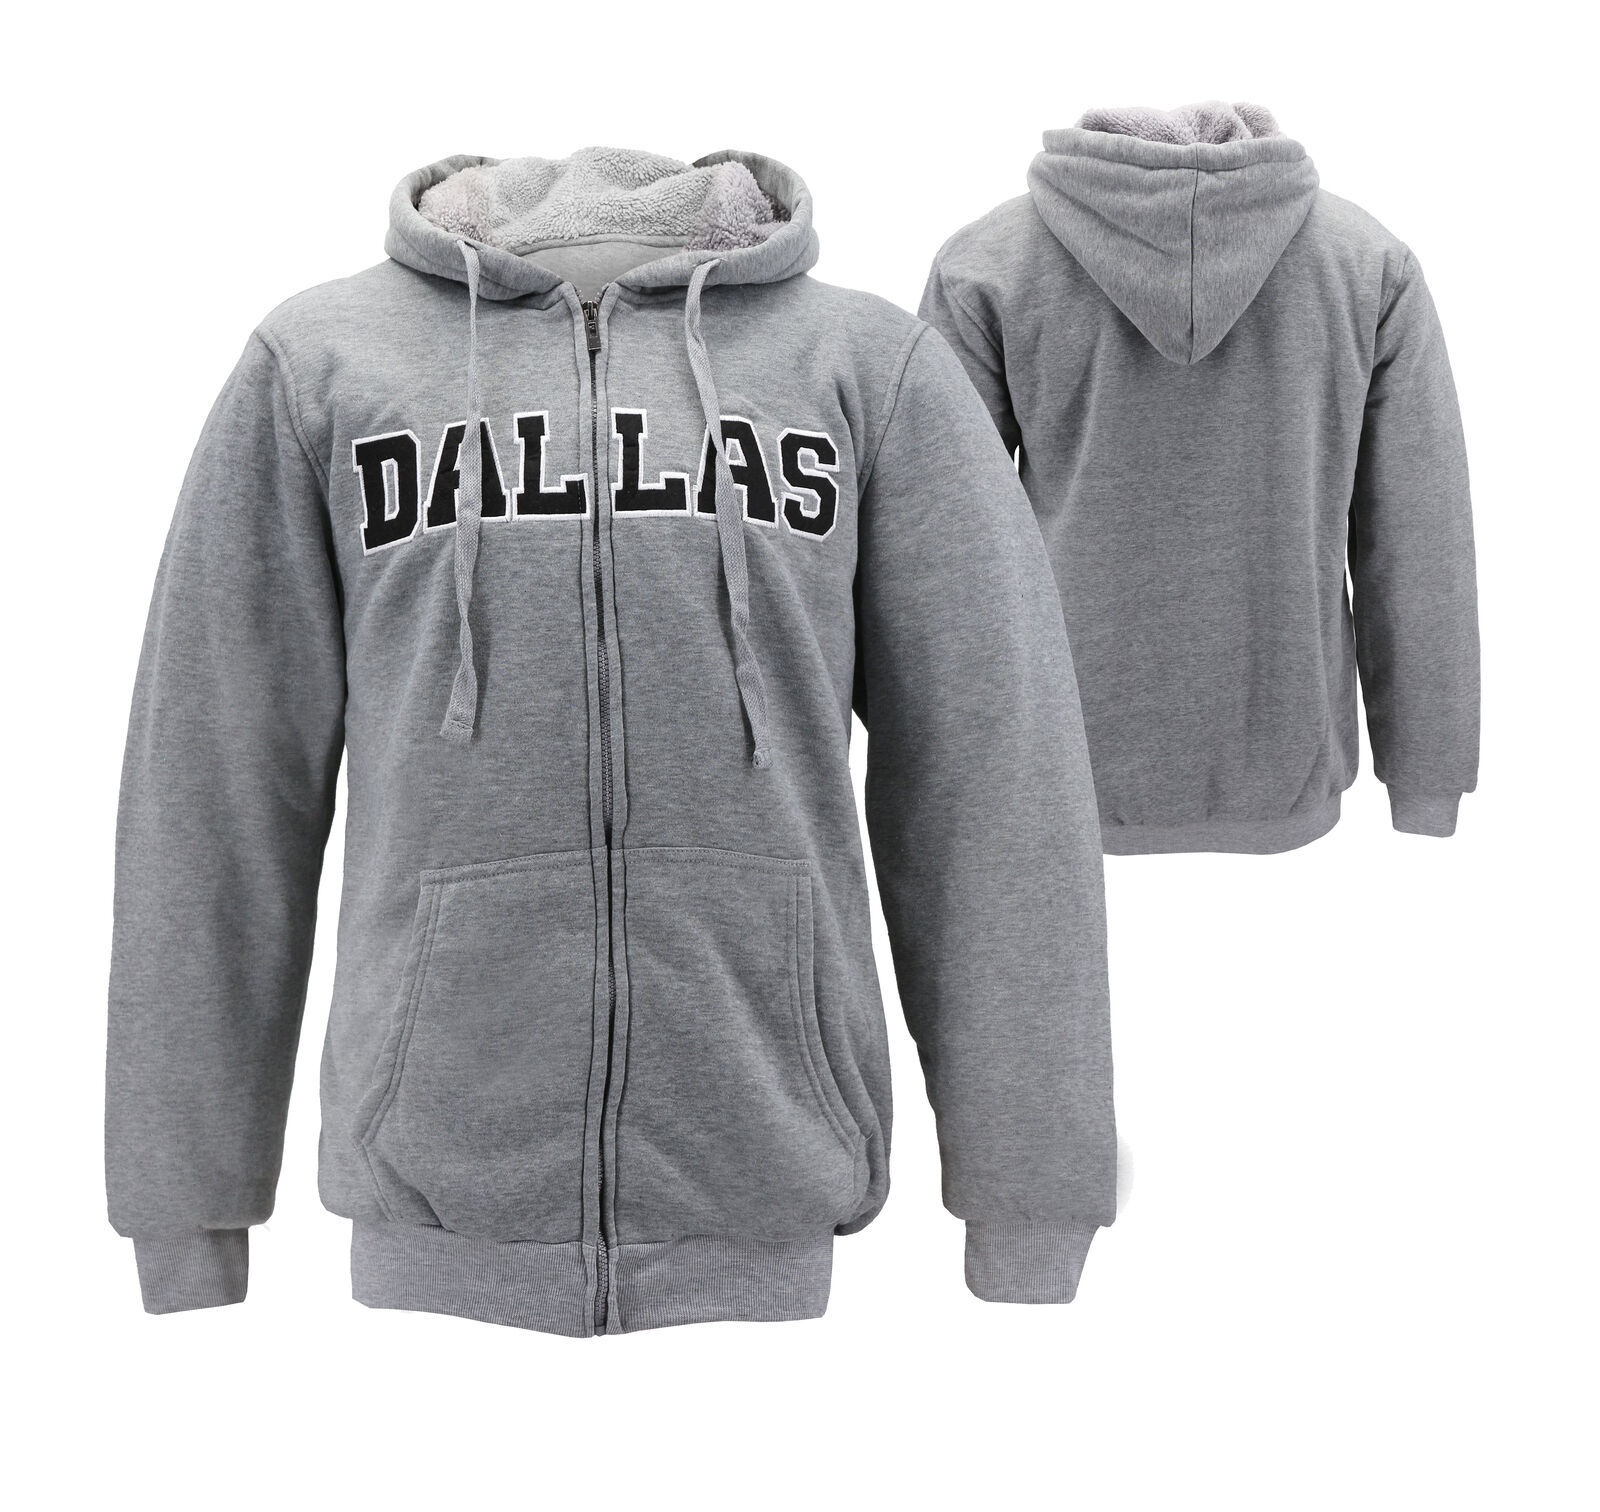 Men's Dallas Embroidered Sherpa Lined Warm Zip Up Fleece Hoodie Sweater Jacket